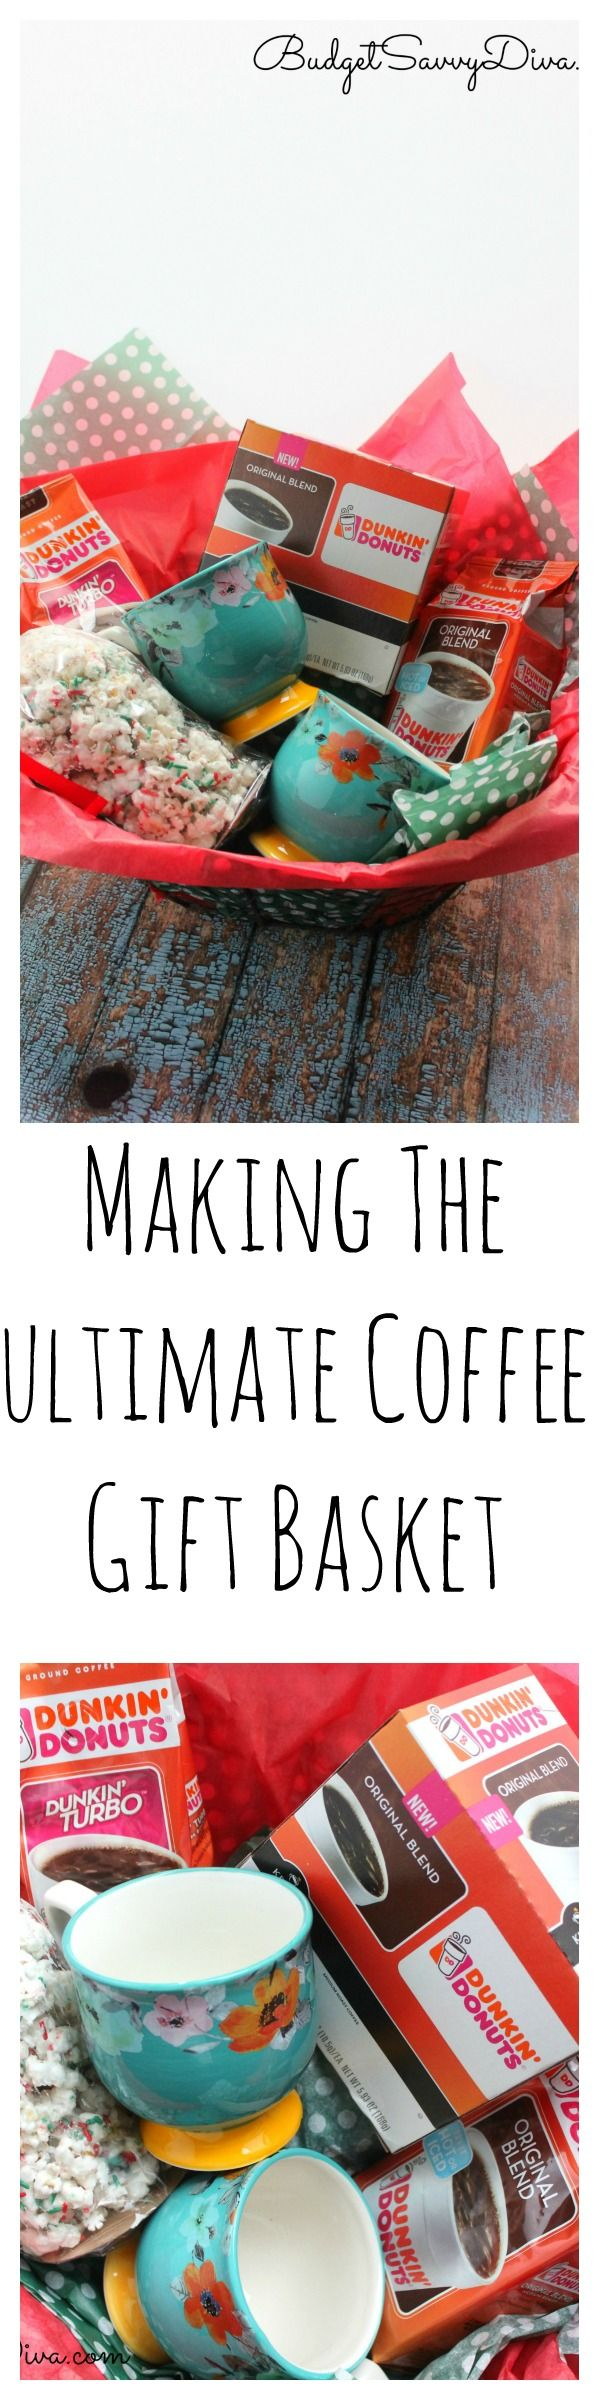 DIY – Making The Ultimate Coffee Gift Basket #ad